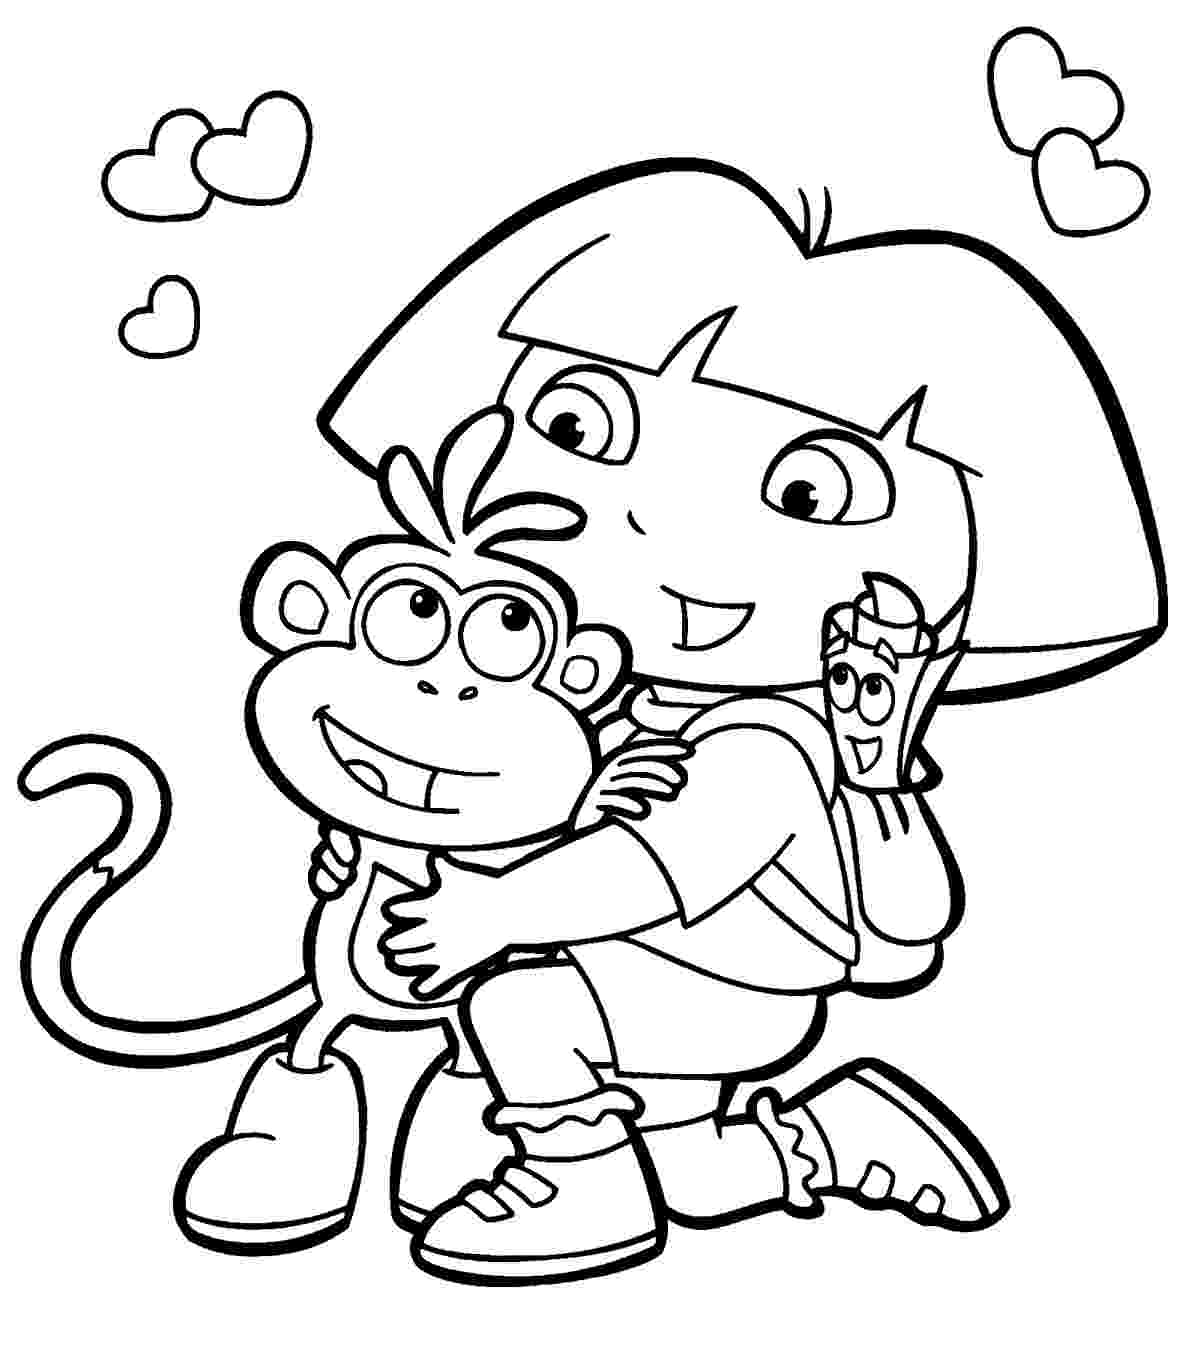 dora colouring pictures dora coloring pages cutecoloringcom colouring dora pictures